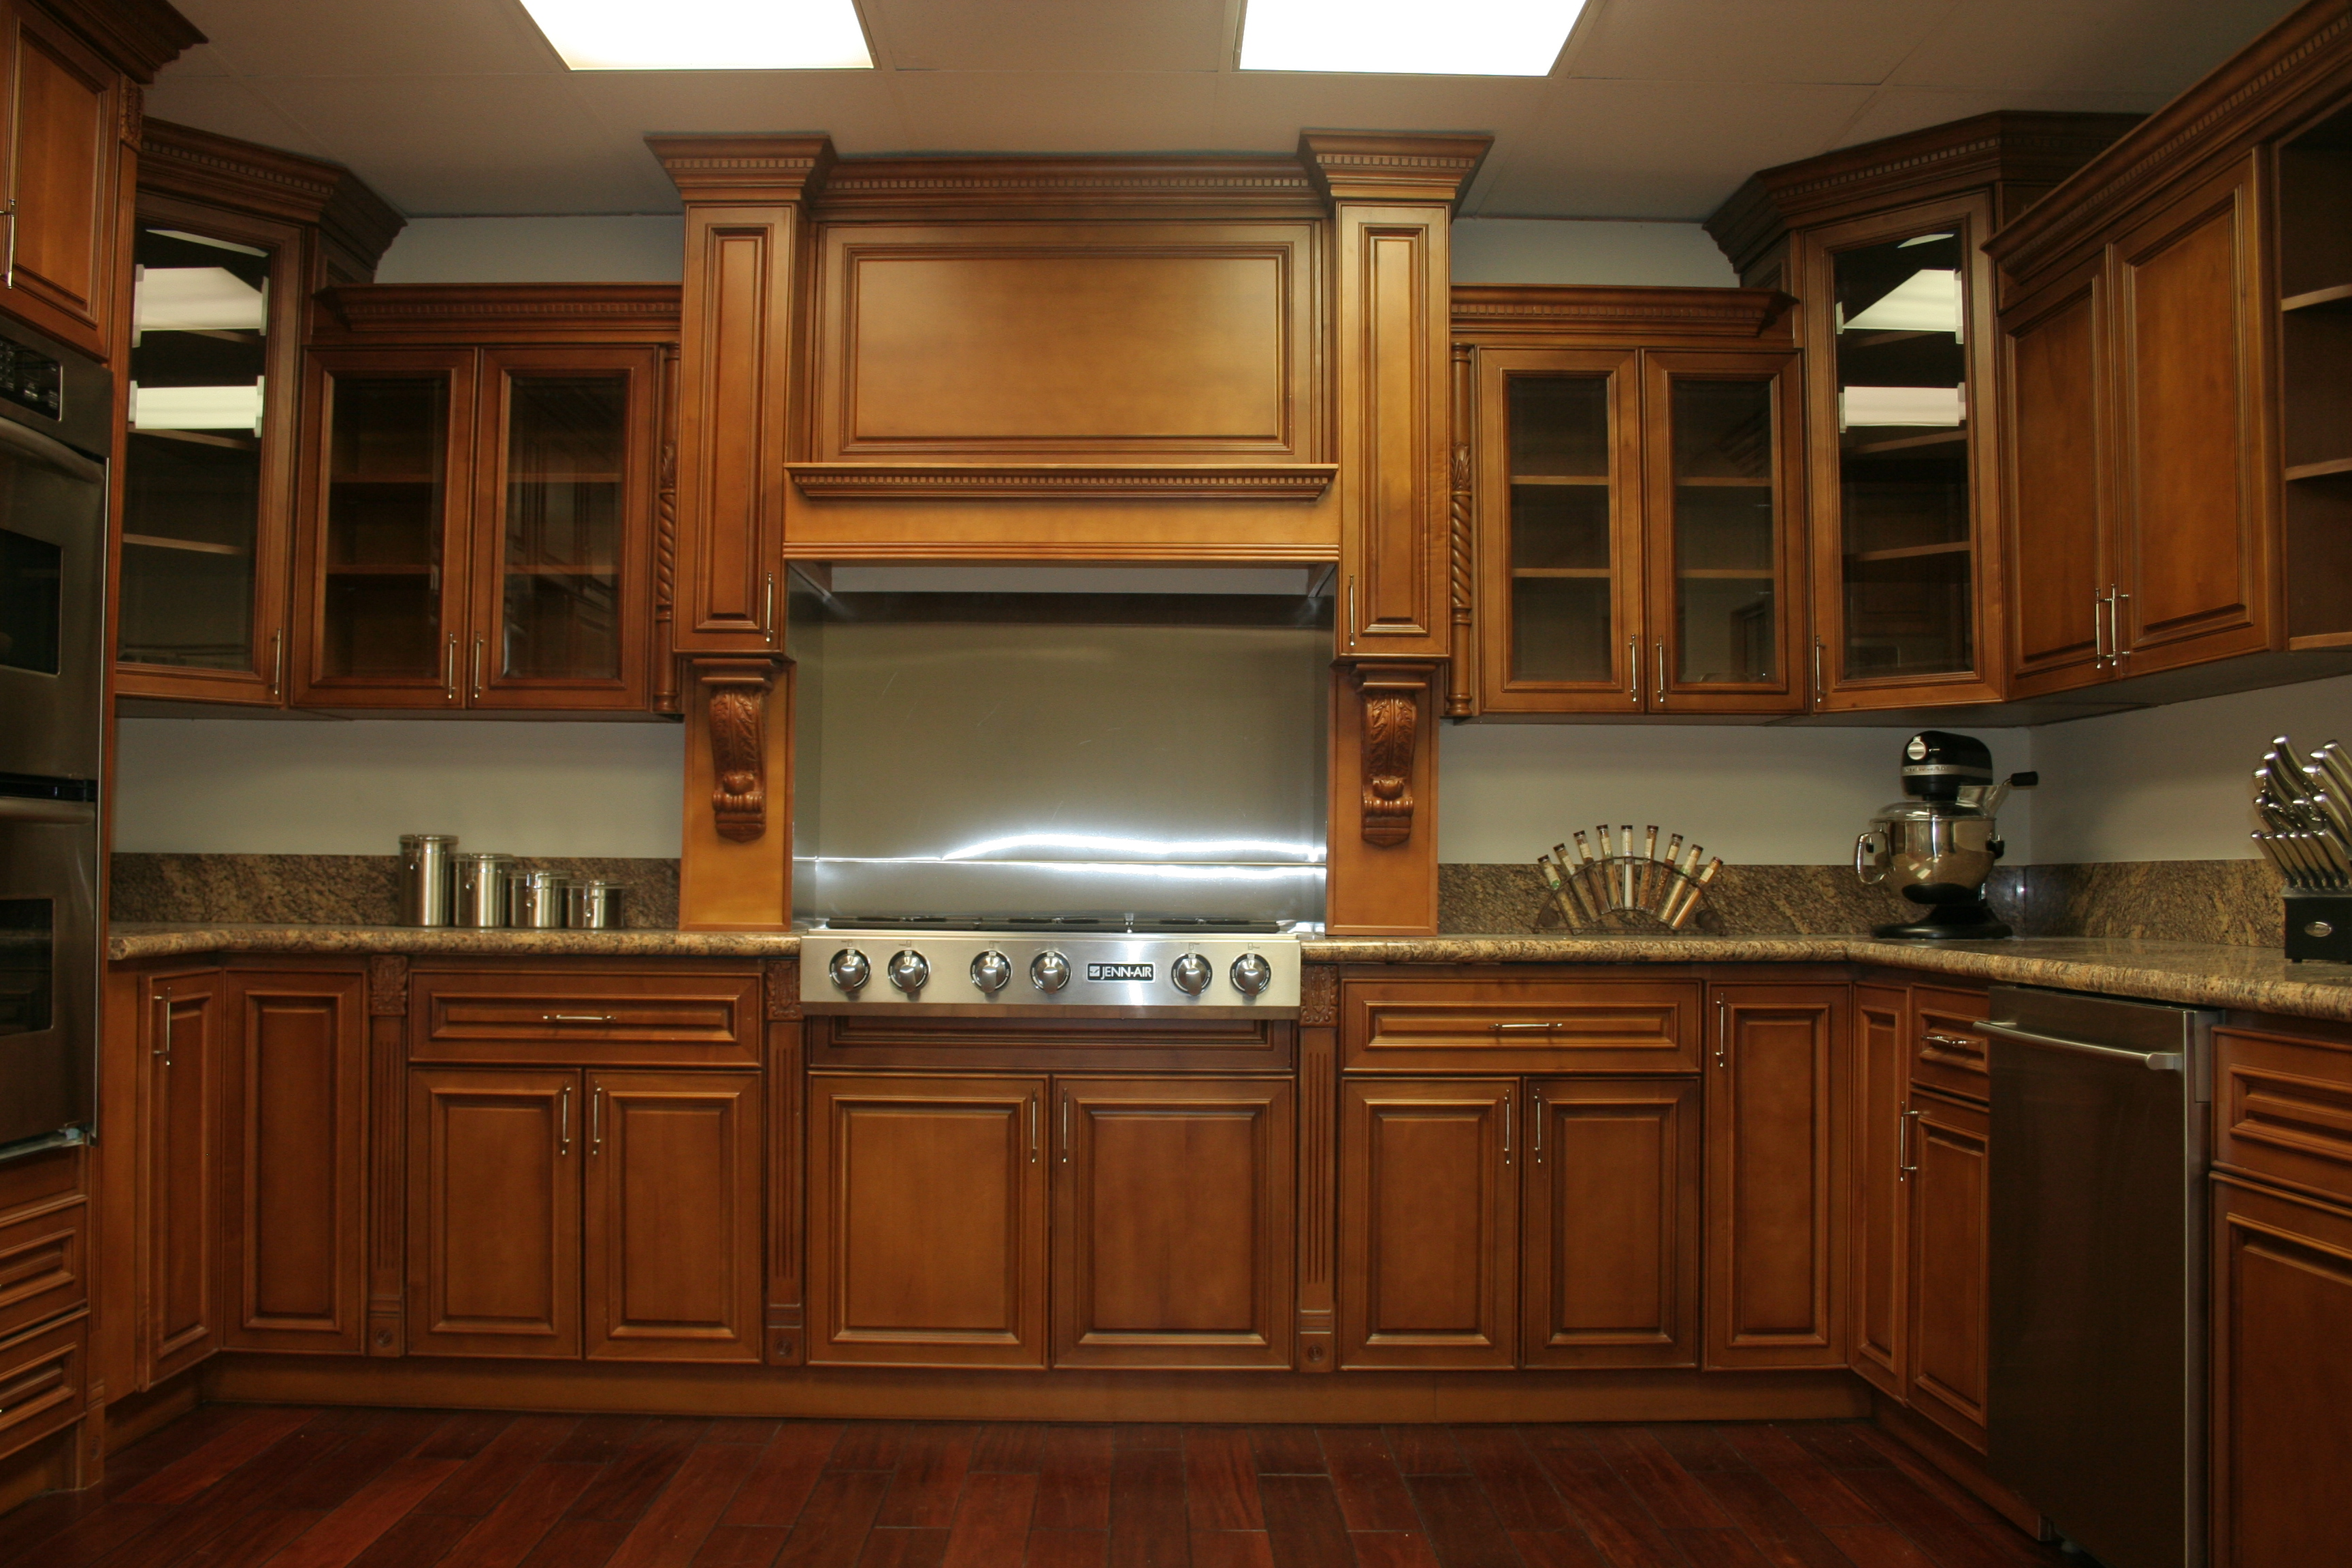 interior-ideas-deep-brown-wooden-maple-kitchen-cabinets ... on Granite Countertops With Maple Cabinets  id=40087